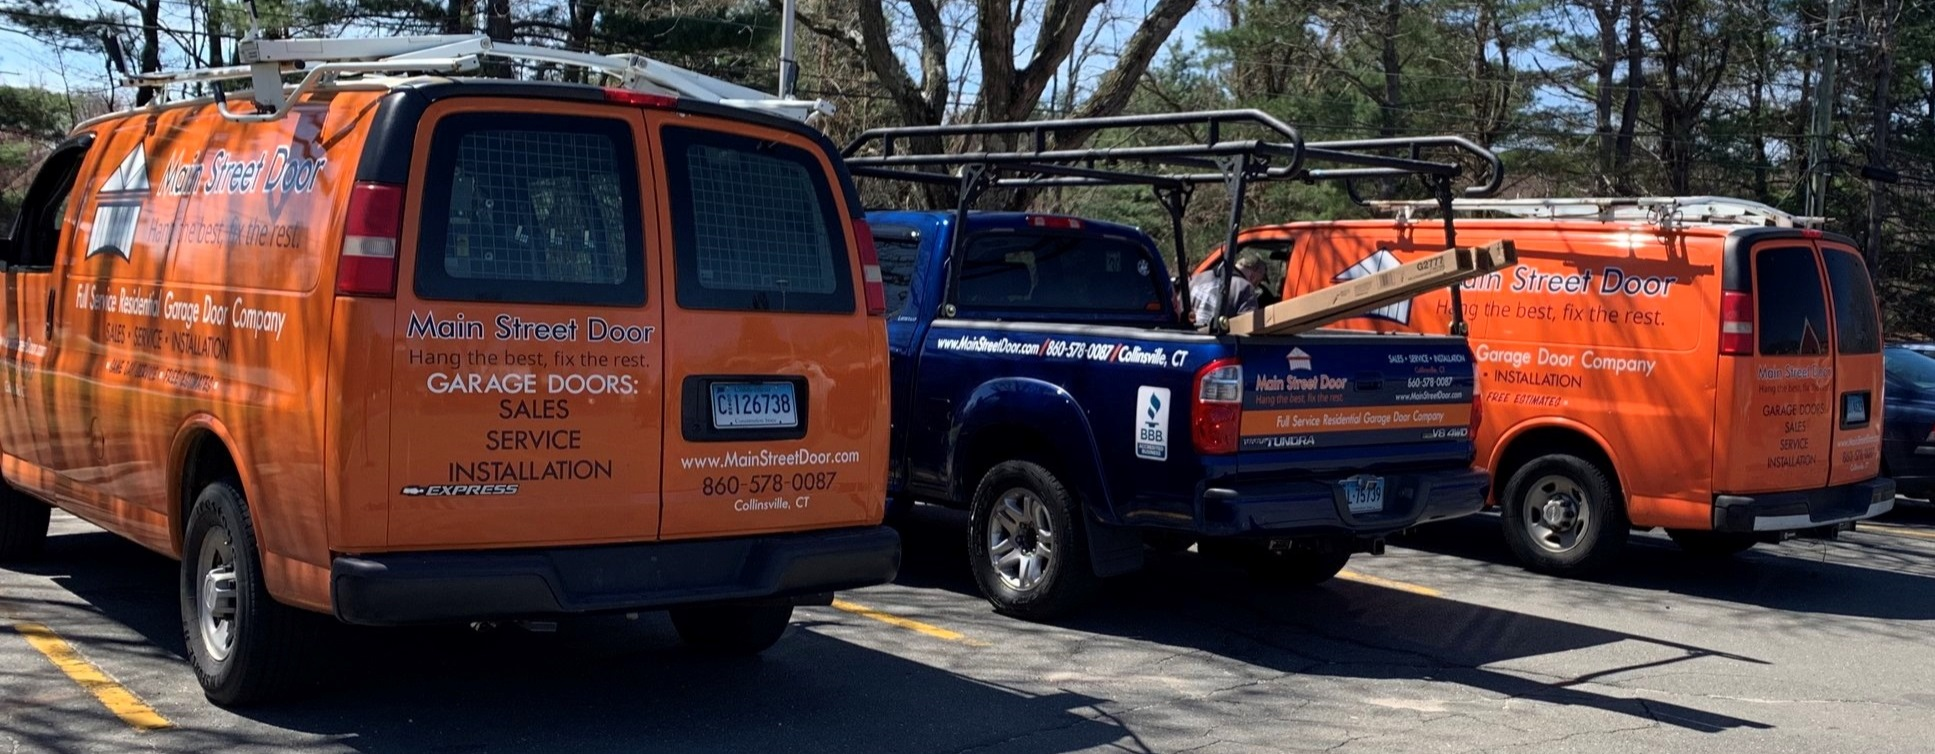 Main Street Door's fleet of service trucks and vans are fully stocked and ready to address any issue your garage doors or operators may have.